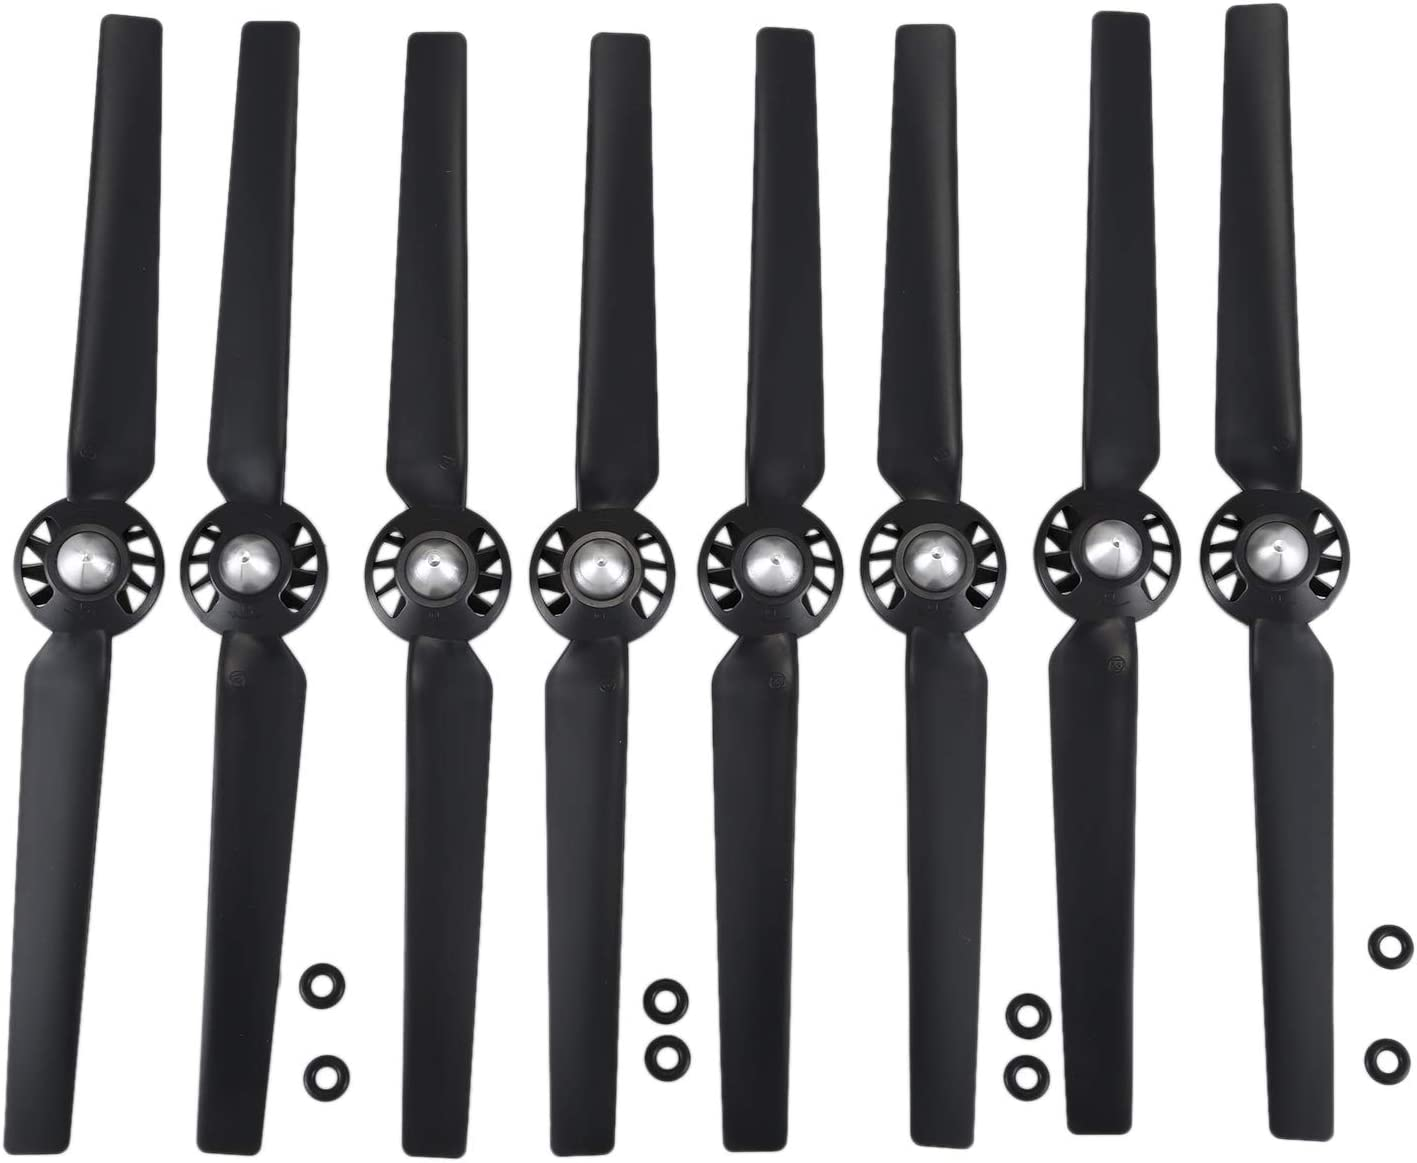 Vaorwne 8Pcs Propeller for Yuneec Q500 Typhoon 4K Camera Drone Spare Parts Quick Release Self Locking Props Replacement Blade Black